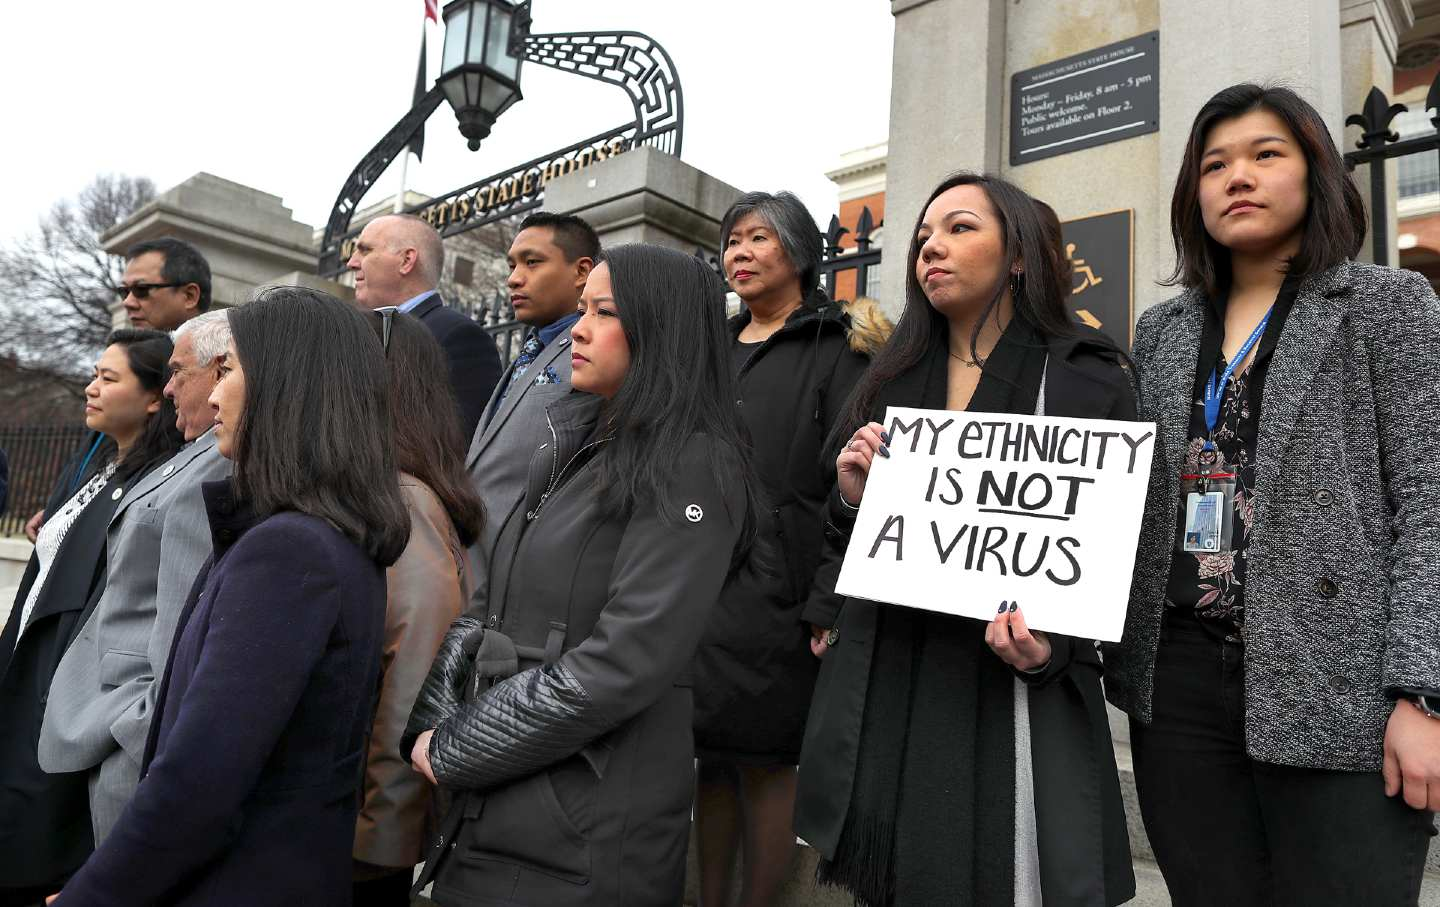 Asian Americans stand together on the steps of a building, one holds a sign reading